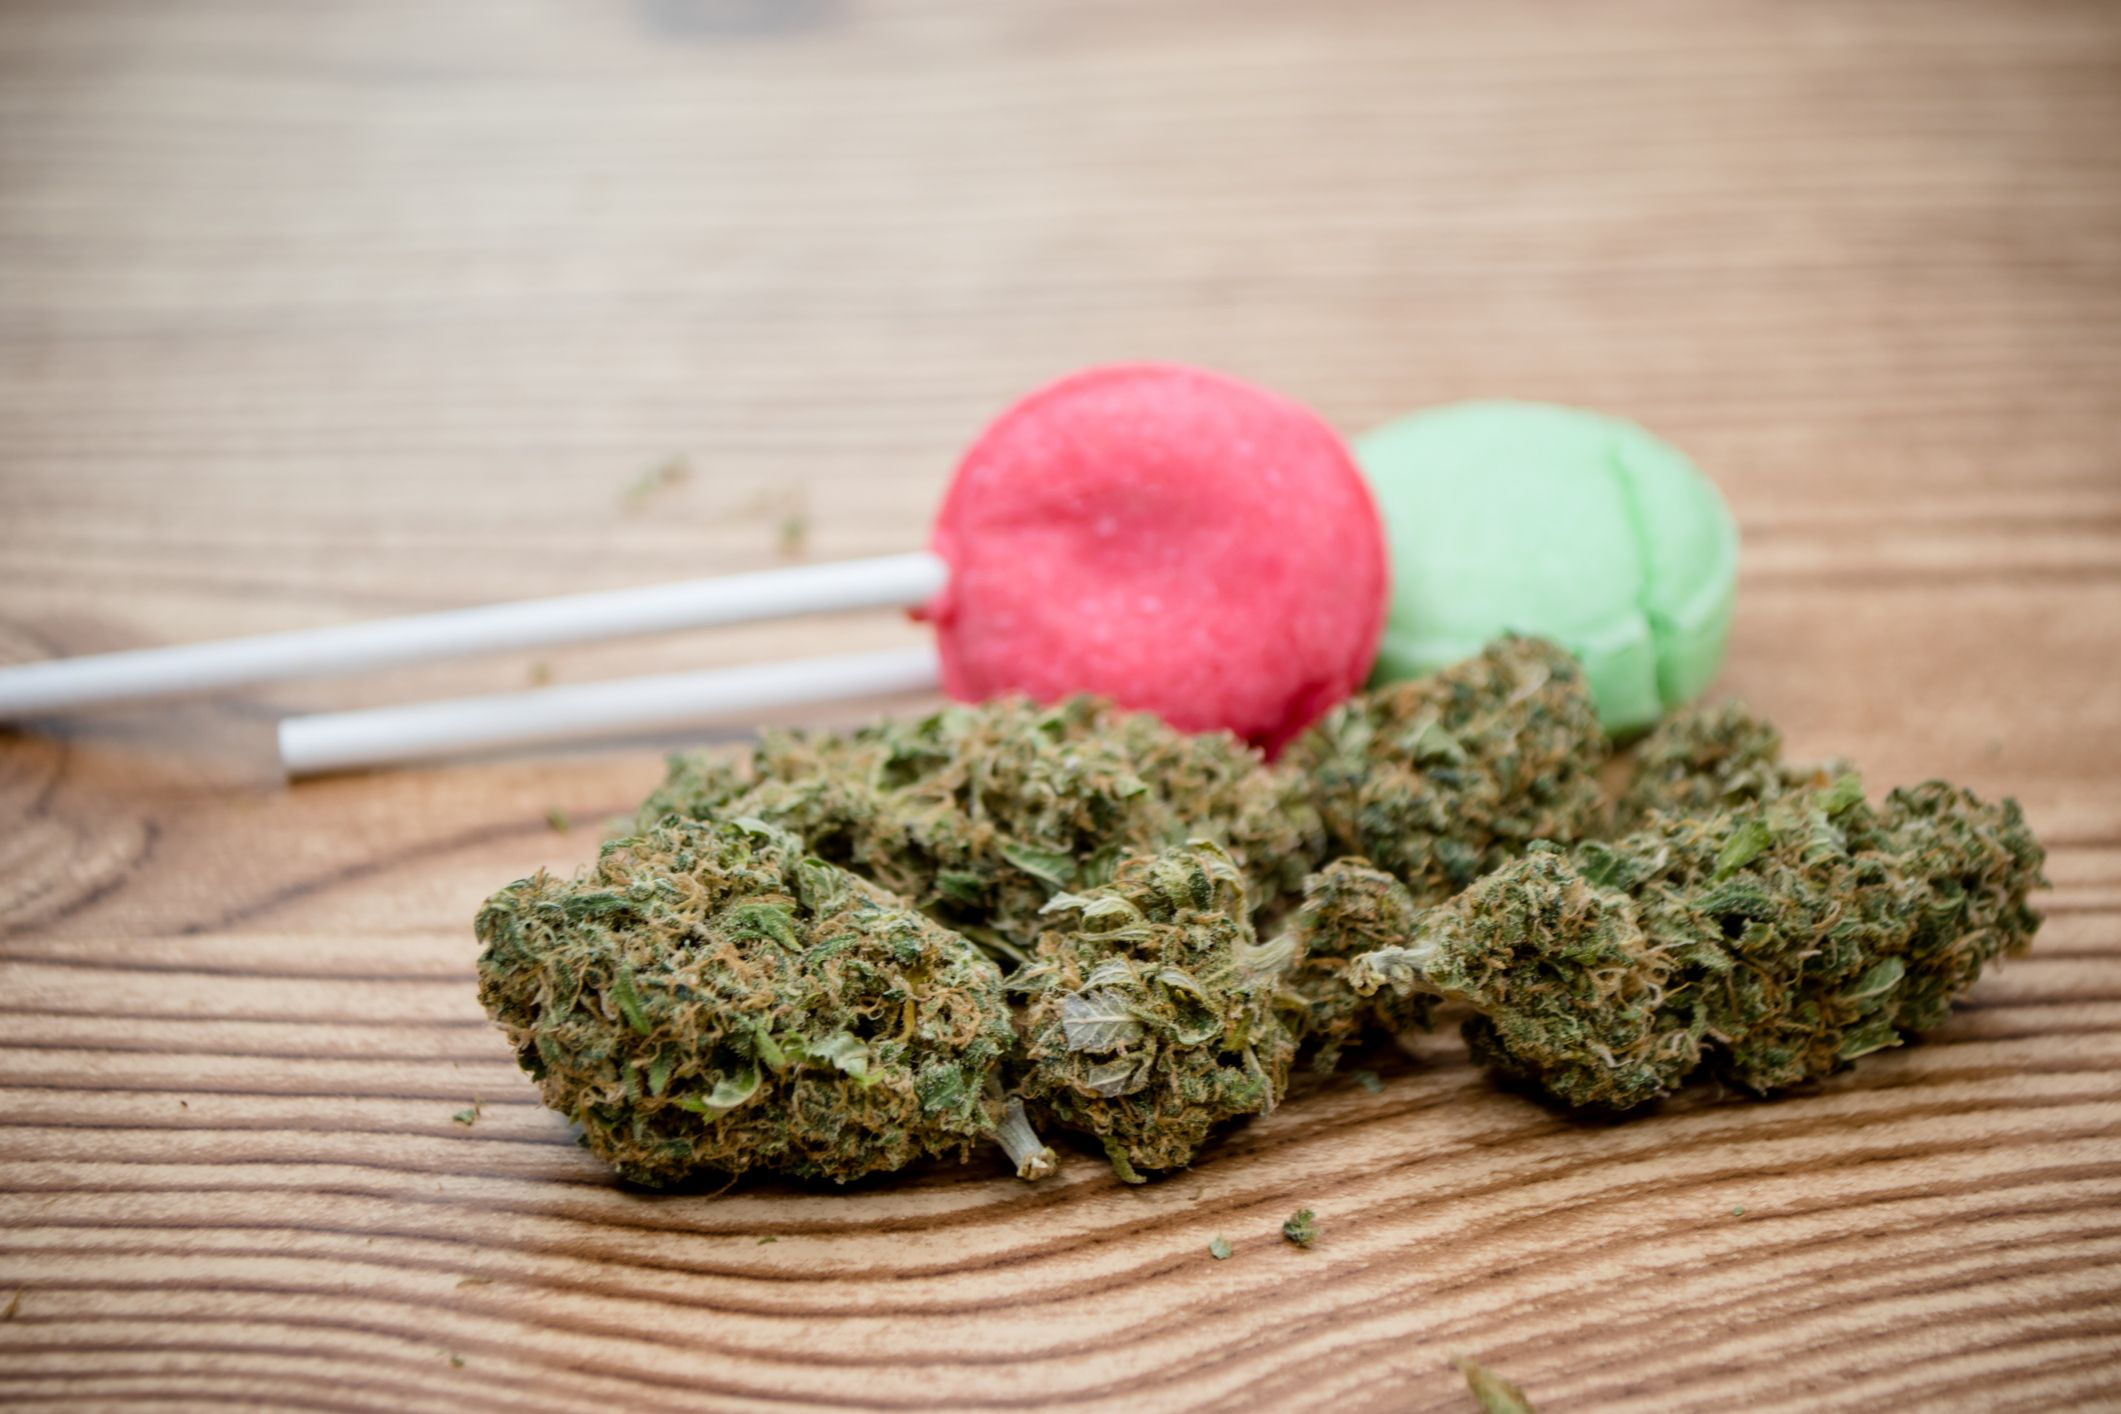 How to Make Lollipop Weed